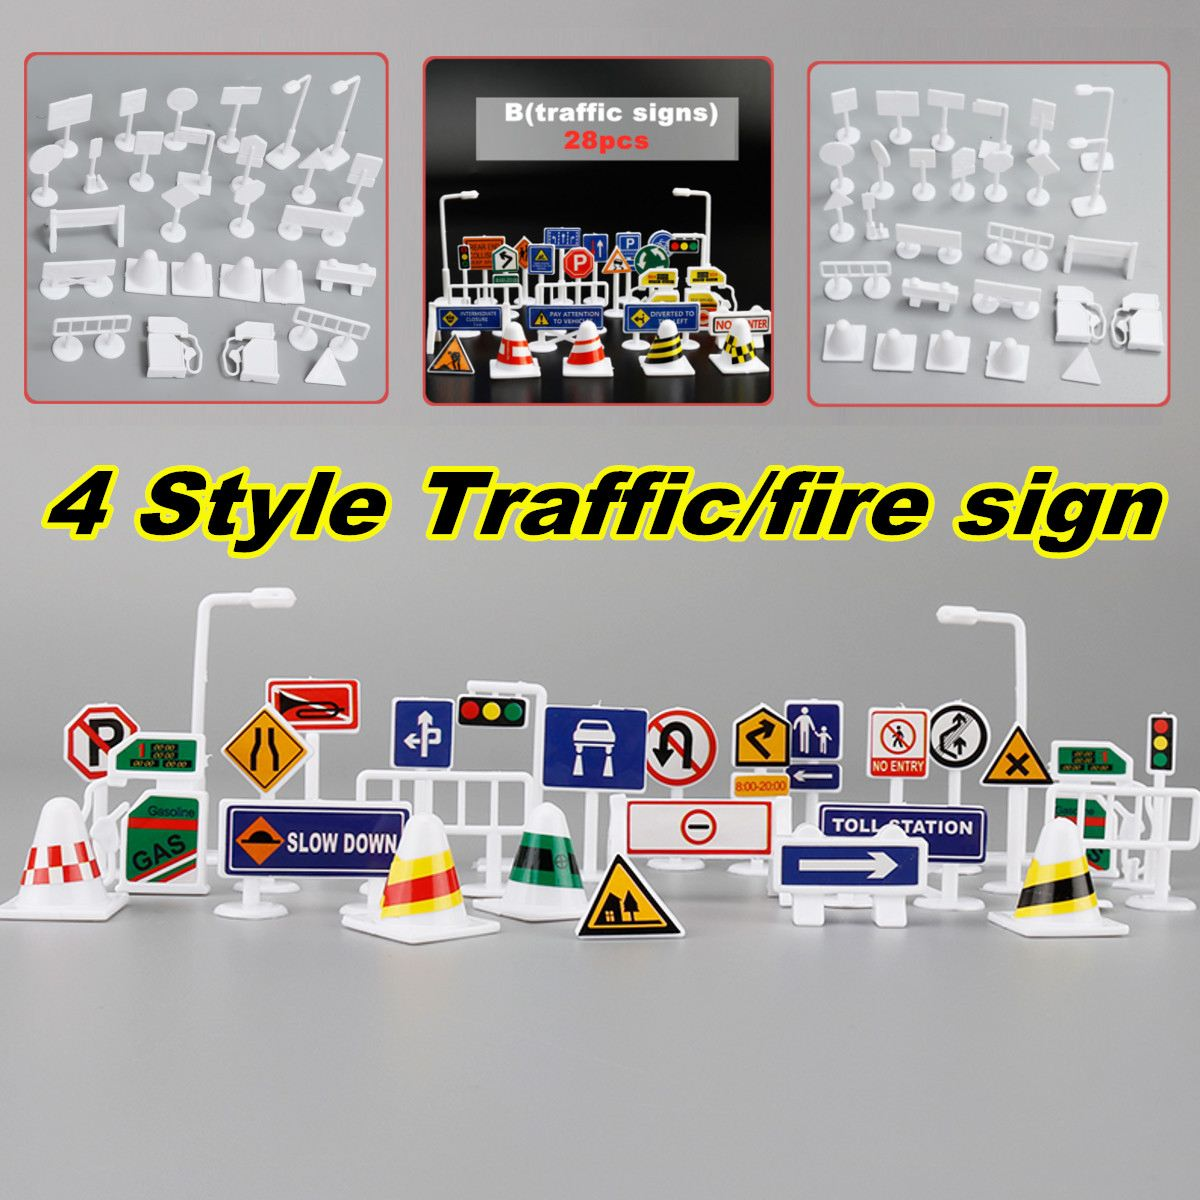 4 Types 28pcs Traffic Road Sign Educational Toys Kids Game Playing Baby Children Learning Toys Gifts Car Toys Accessories Set Convenient To Cook